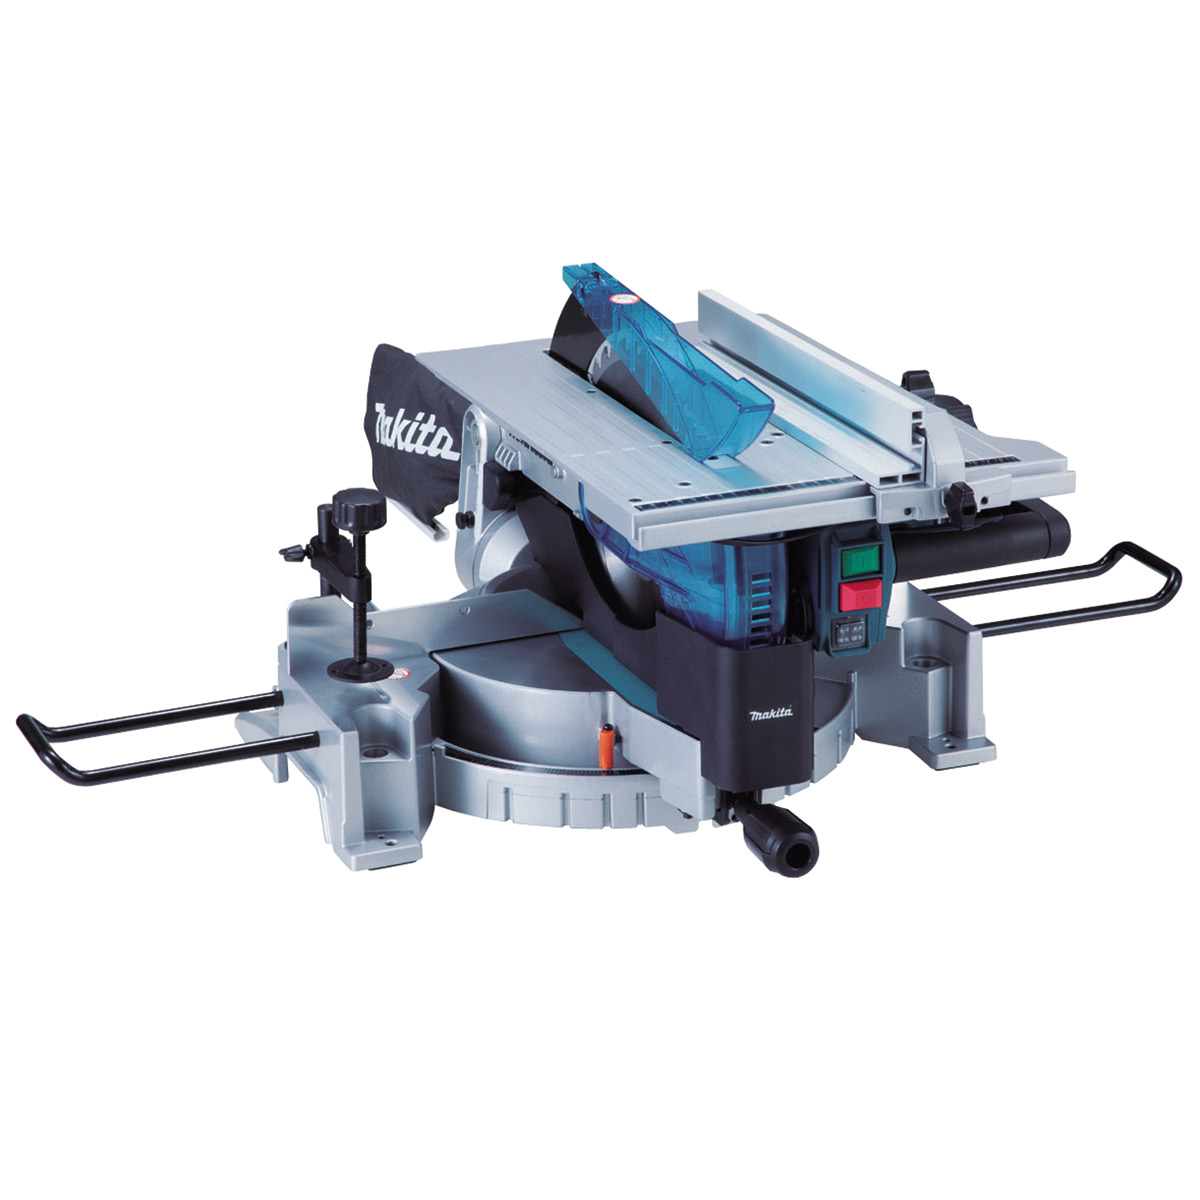 Makita Lh1200fl Combination Table Mitre Saw 305mm 110v